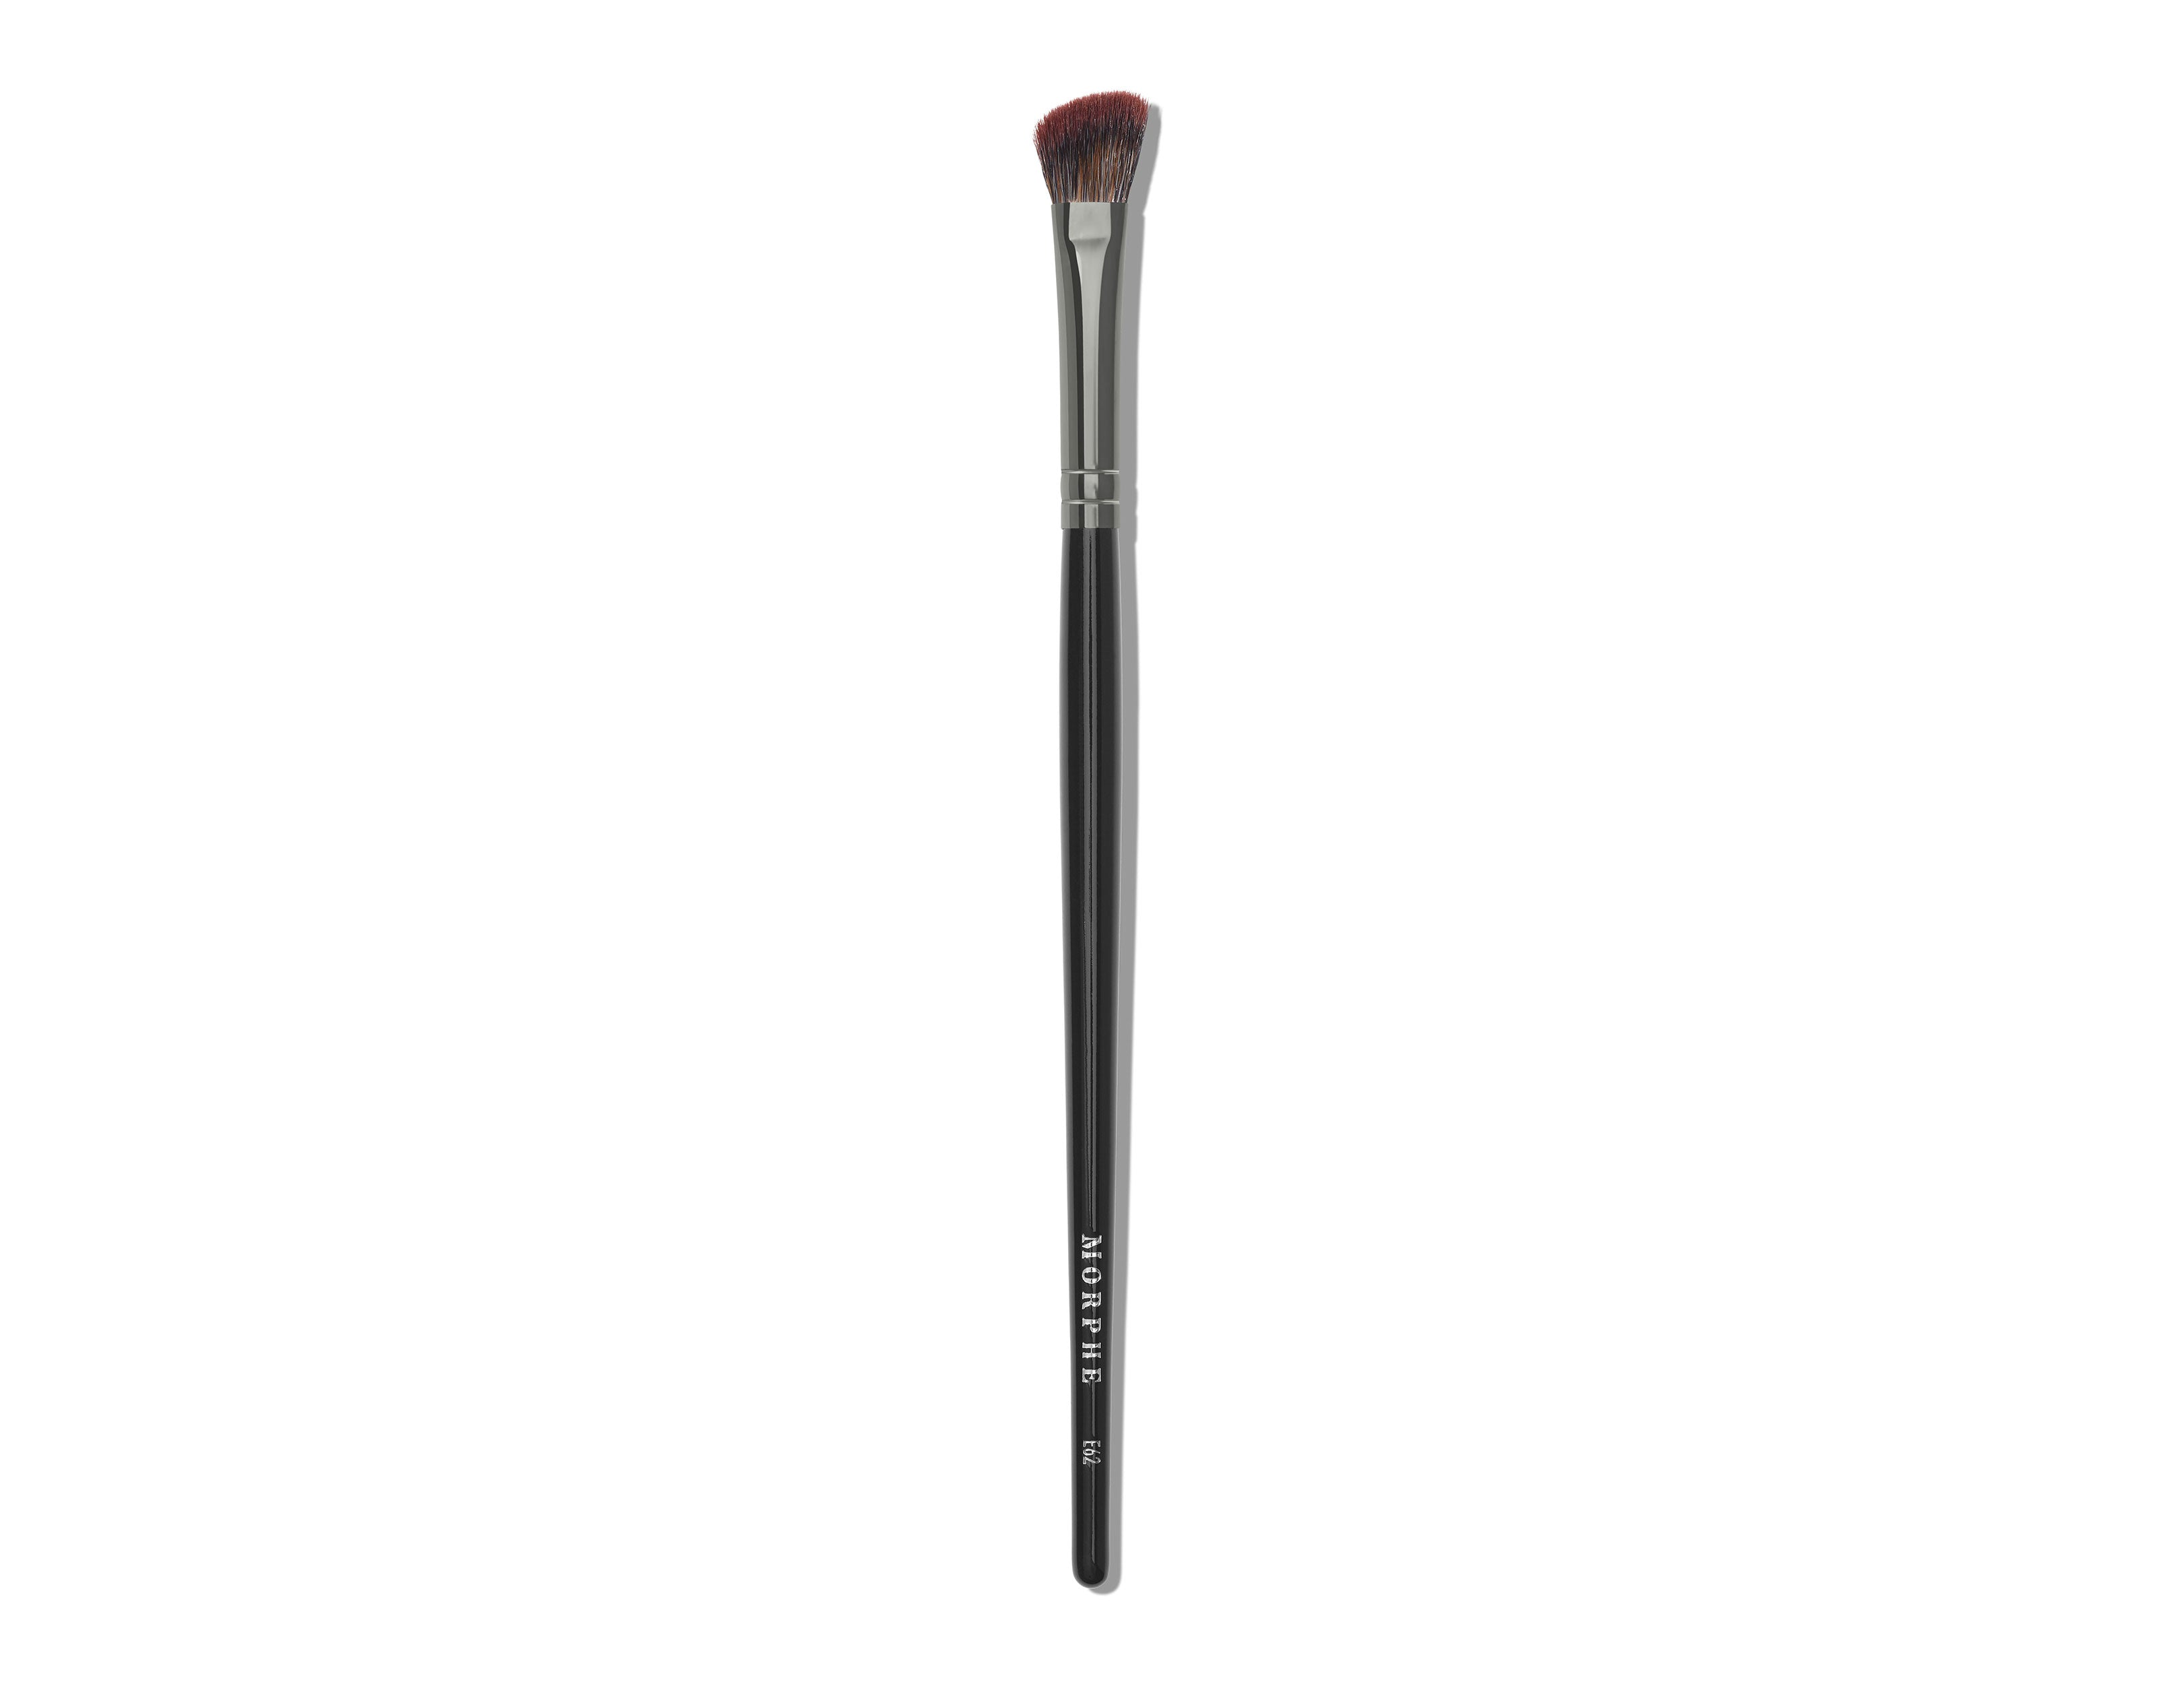 E62 -  ANGLED NOSE CONTOURING BRUSH, view larger image